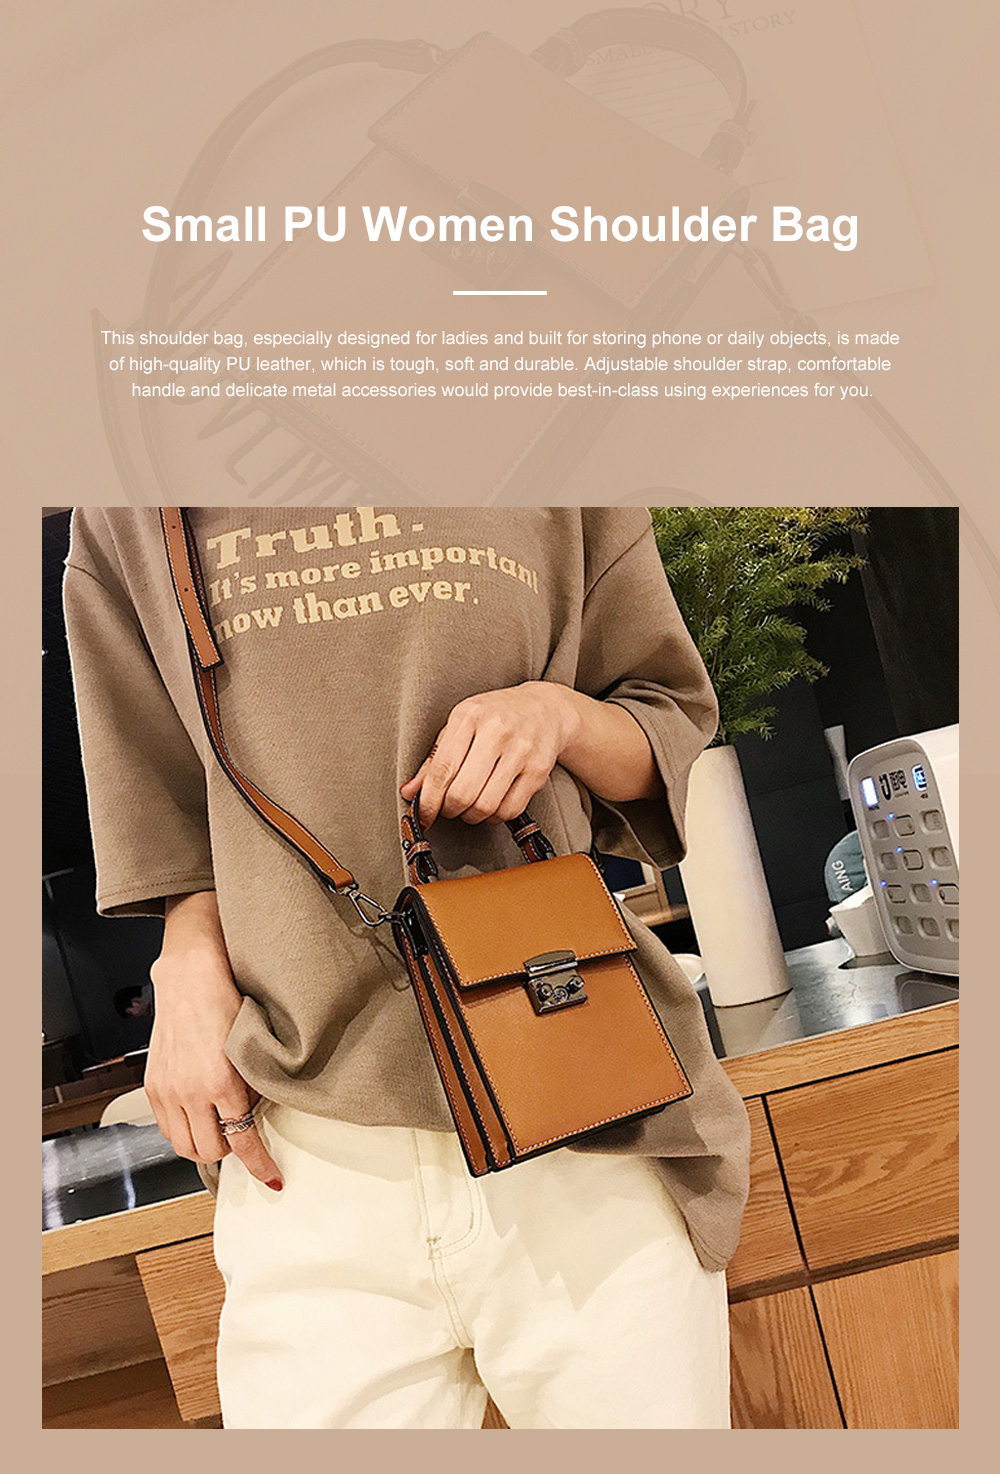 Minimalist Vintage Women Shoulder Slung Bag with Comfortable Handle Small Phone PU Leather Hand Bag for Ladies 0